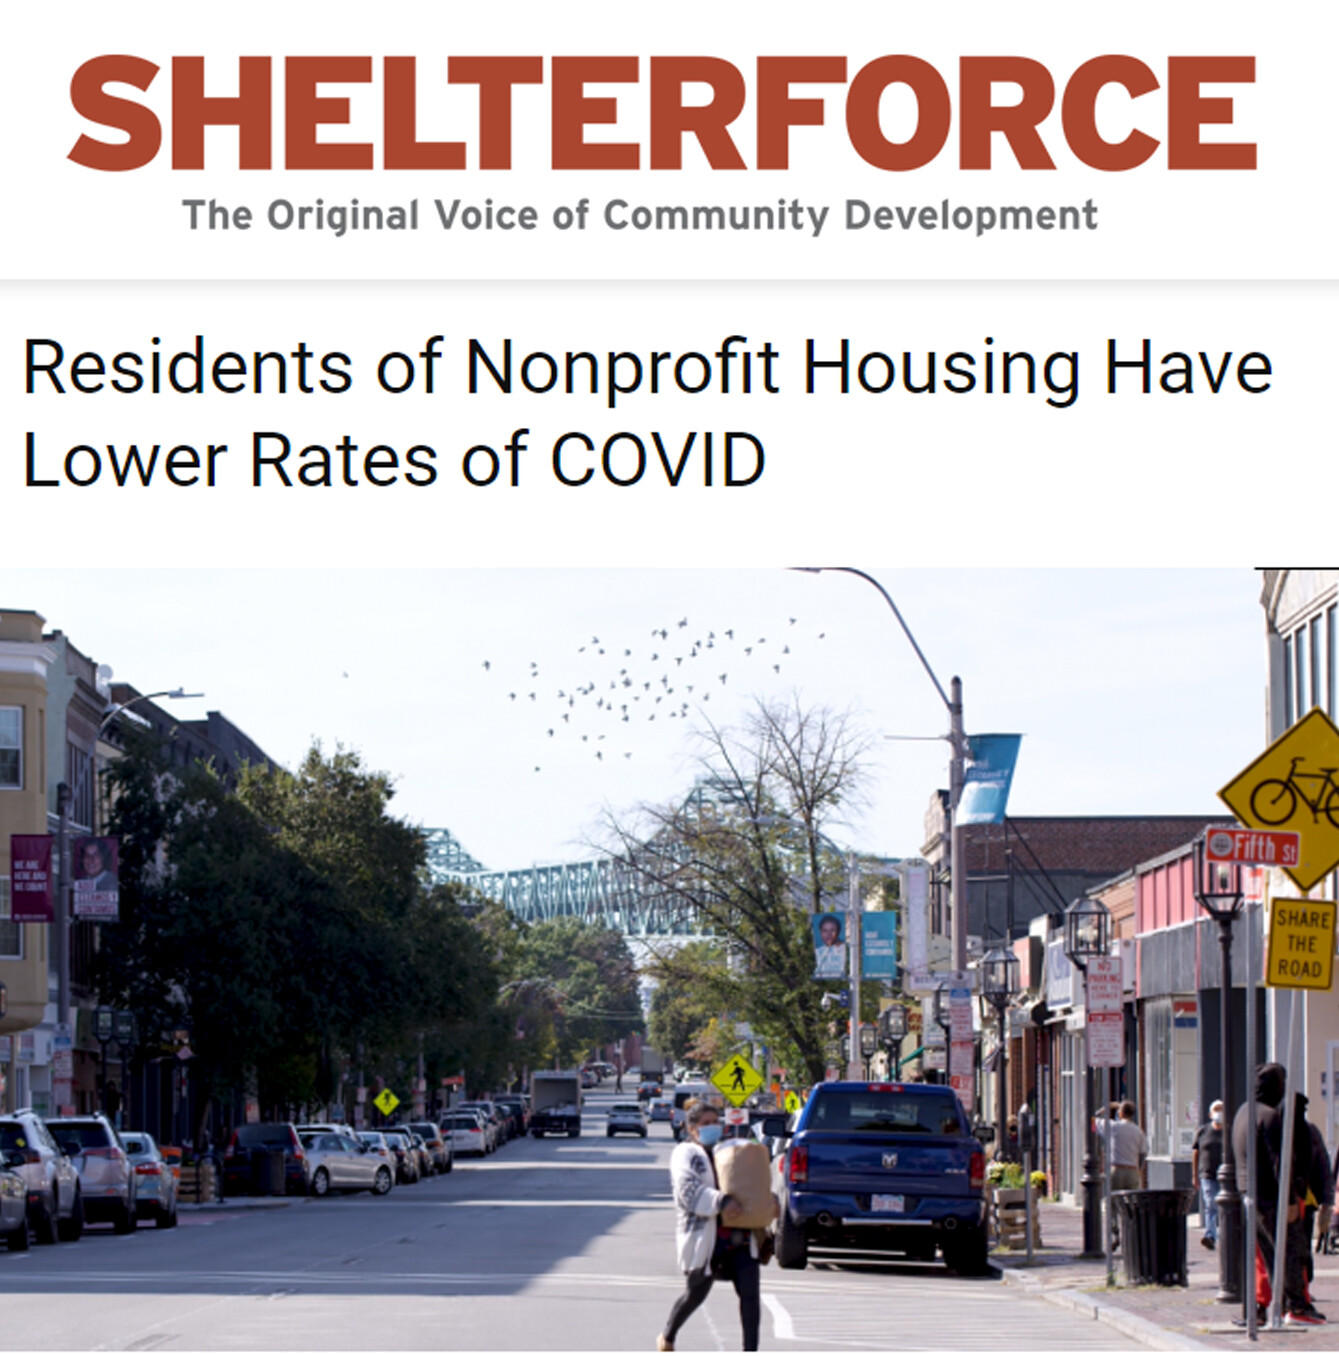 Residents of Nonprofit Housing Have Lower Rates of COVID